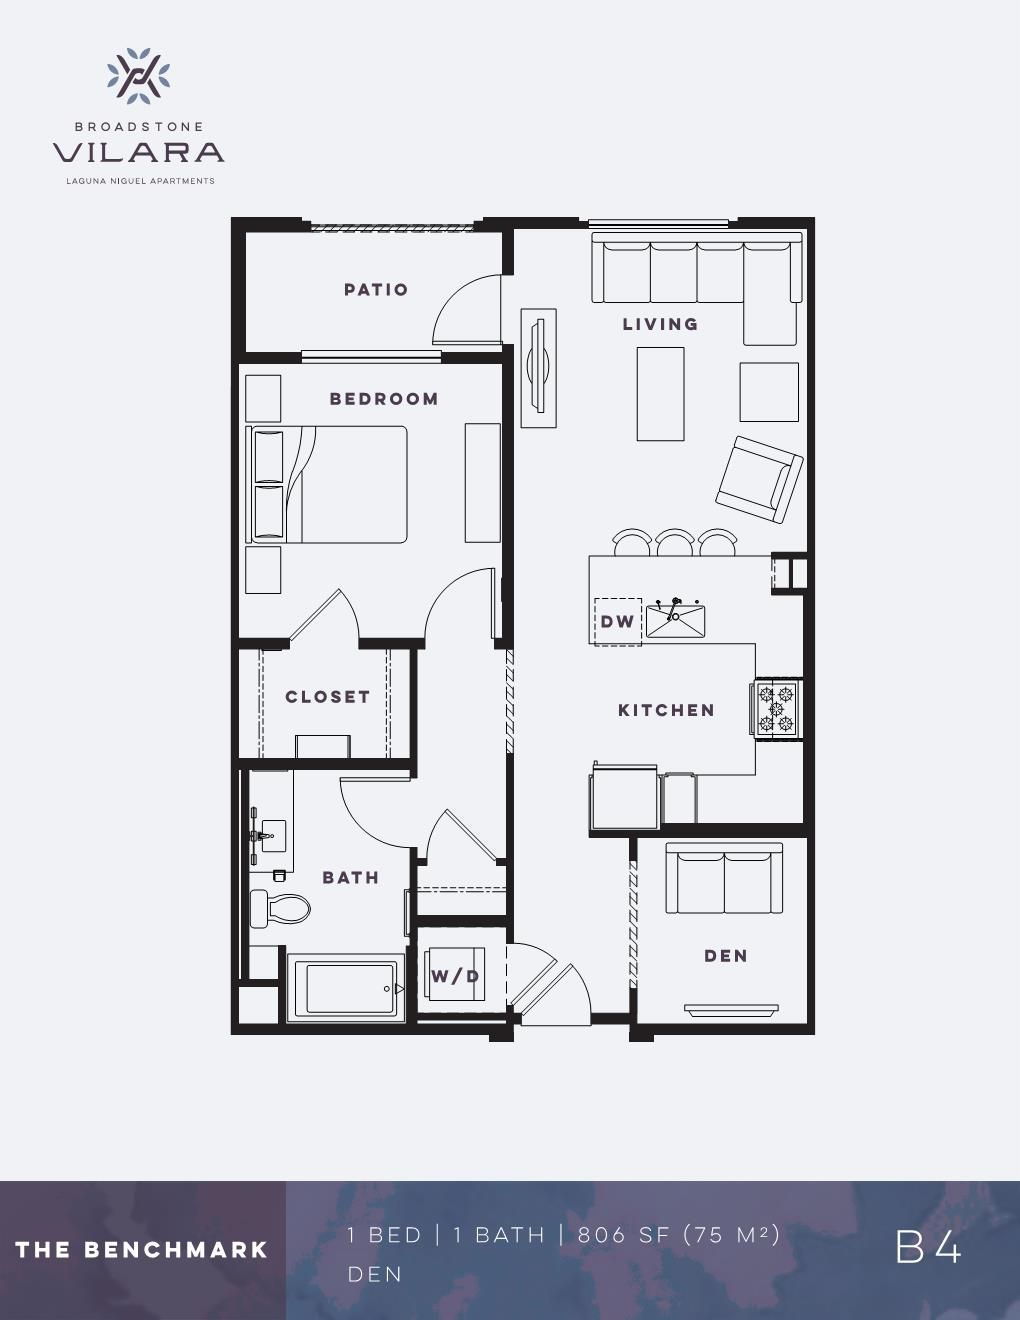 One Bedroom Den Apartment The Benchmark Broadstone Vilara In 2020 Floor Plans Apartment Floor Plans Apartment Floor Plan